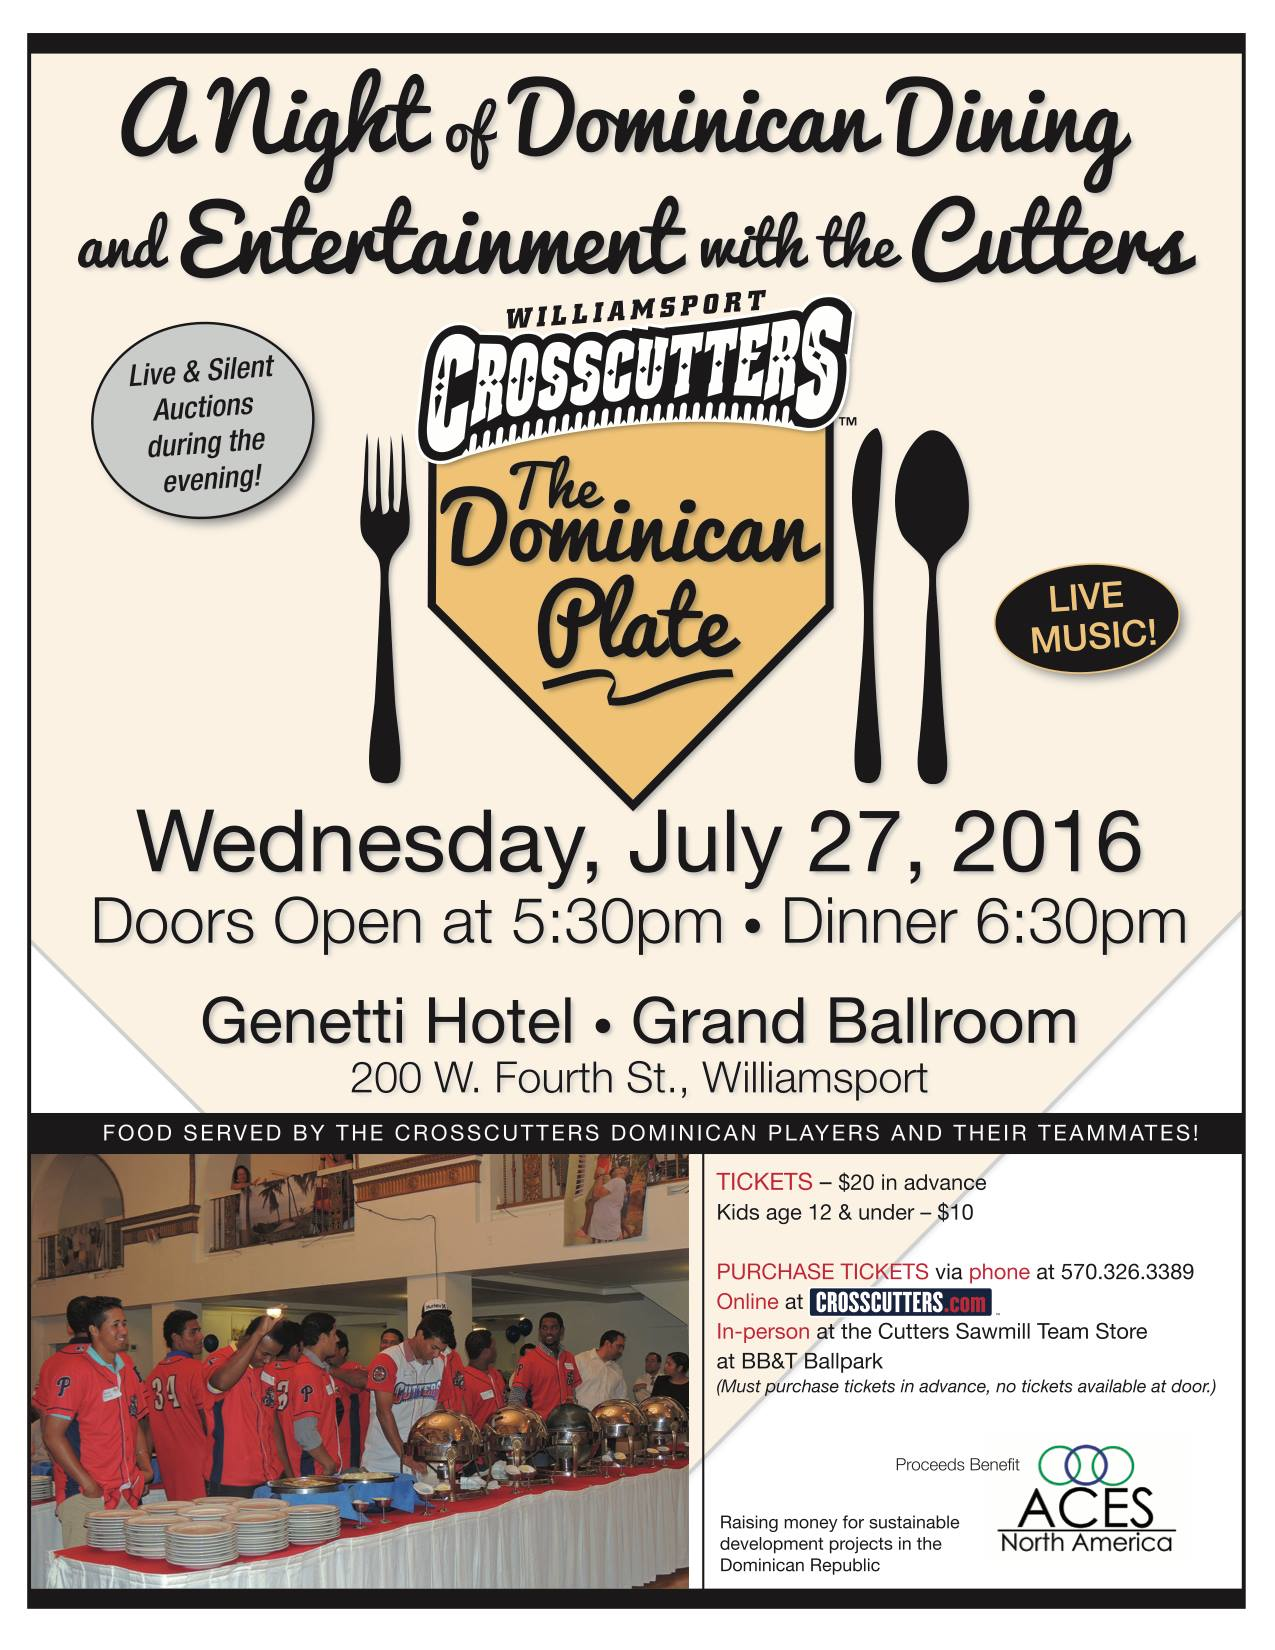 ACES 2016 benefit Wed., July 27, 2016 – 5:30pm